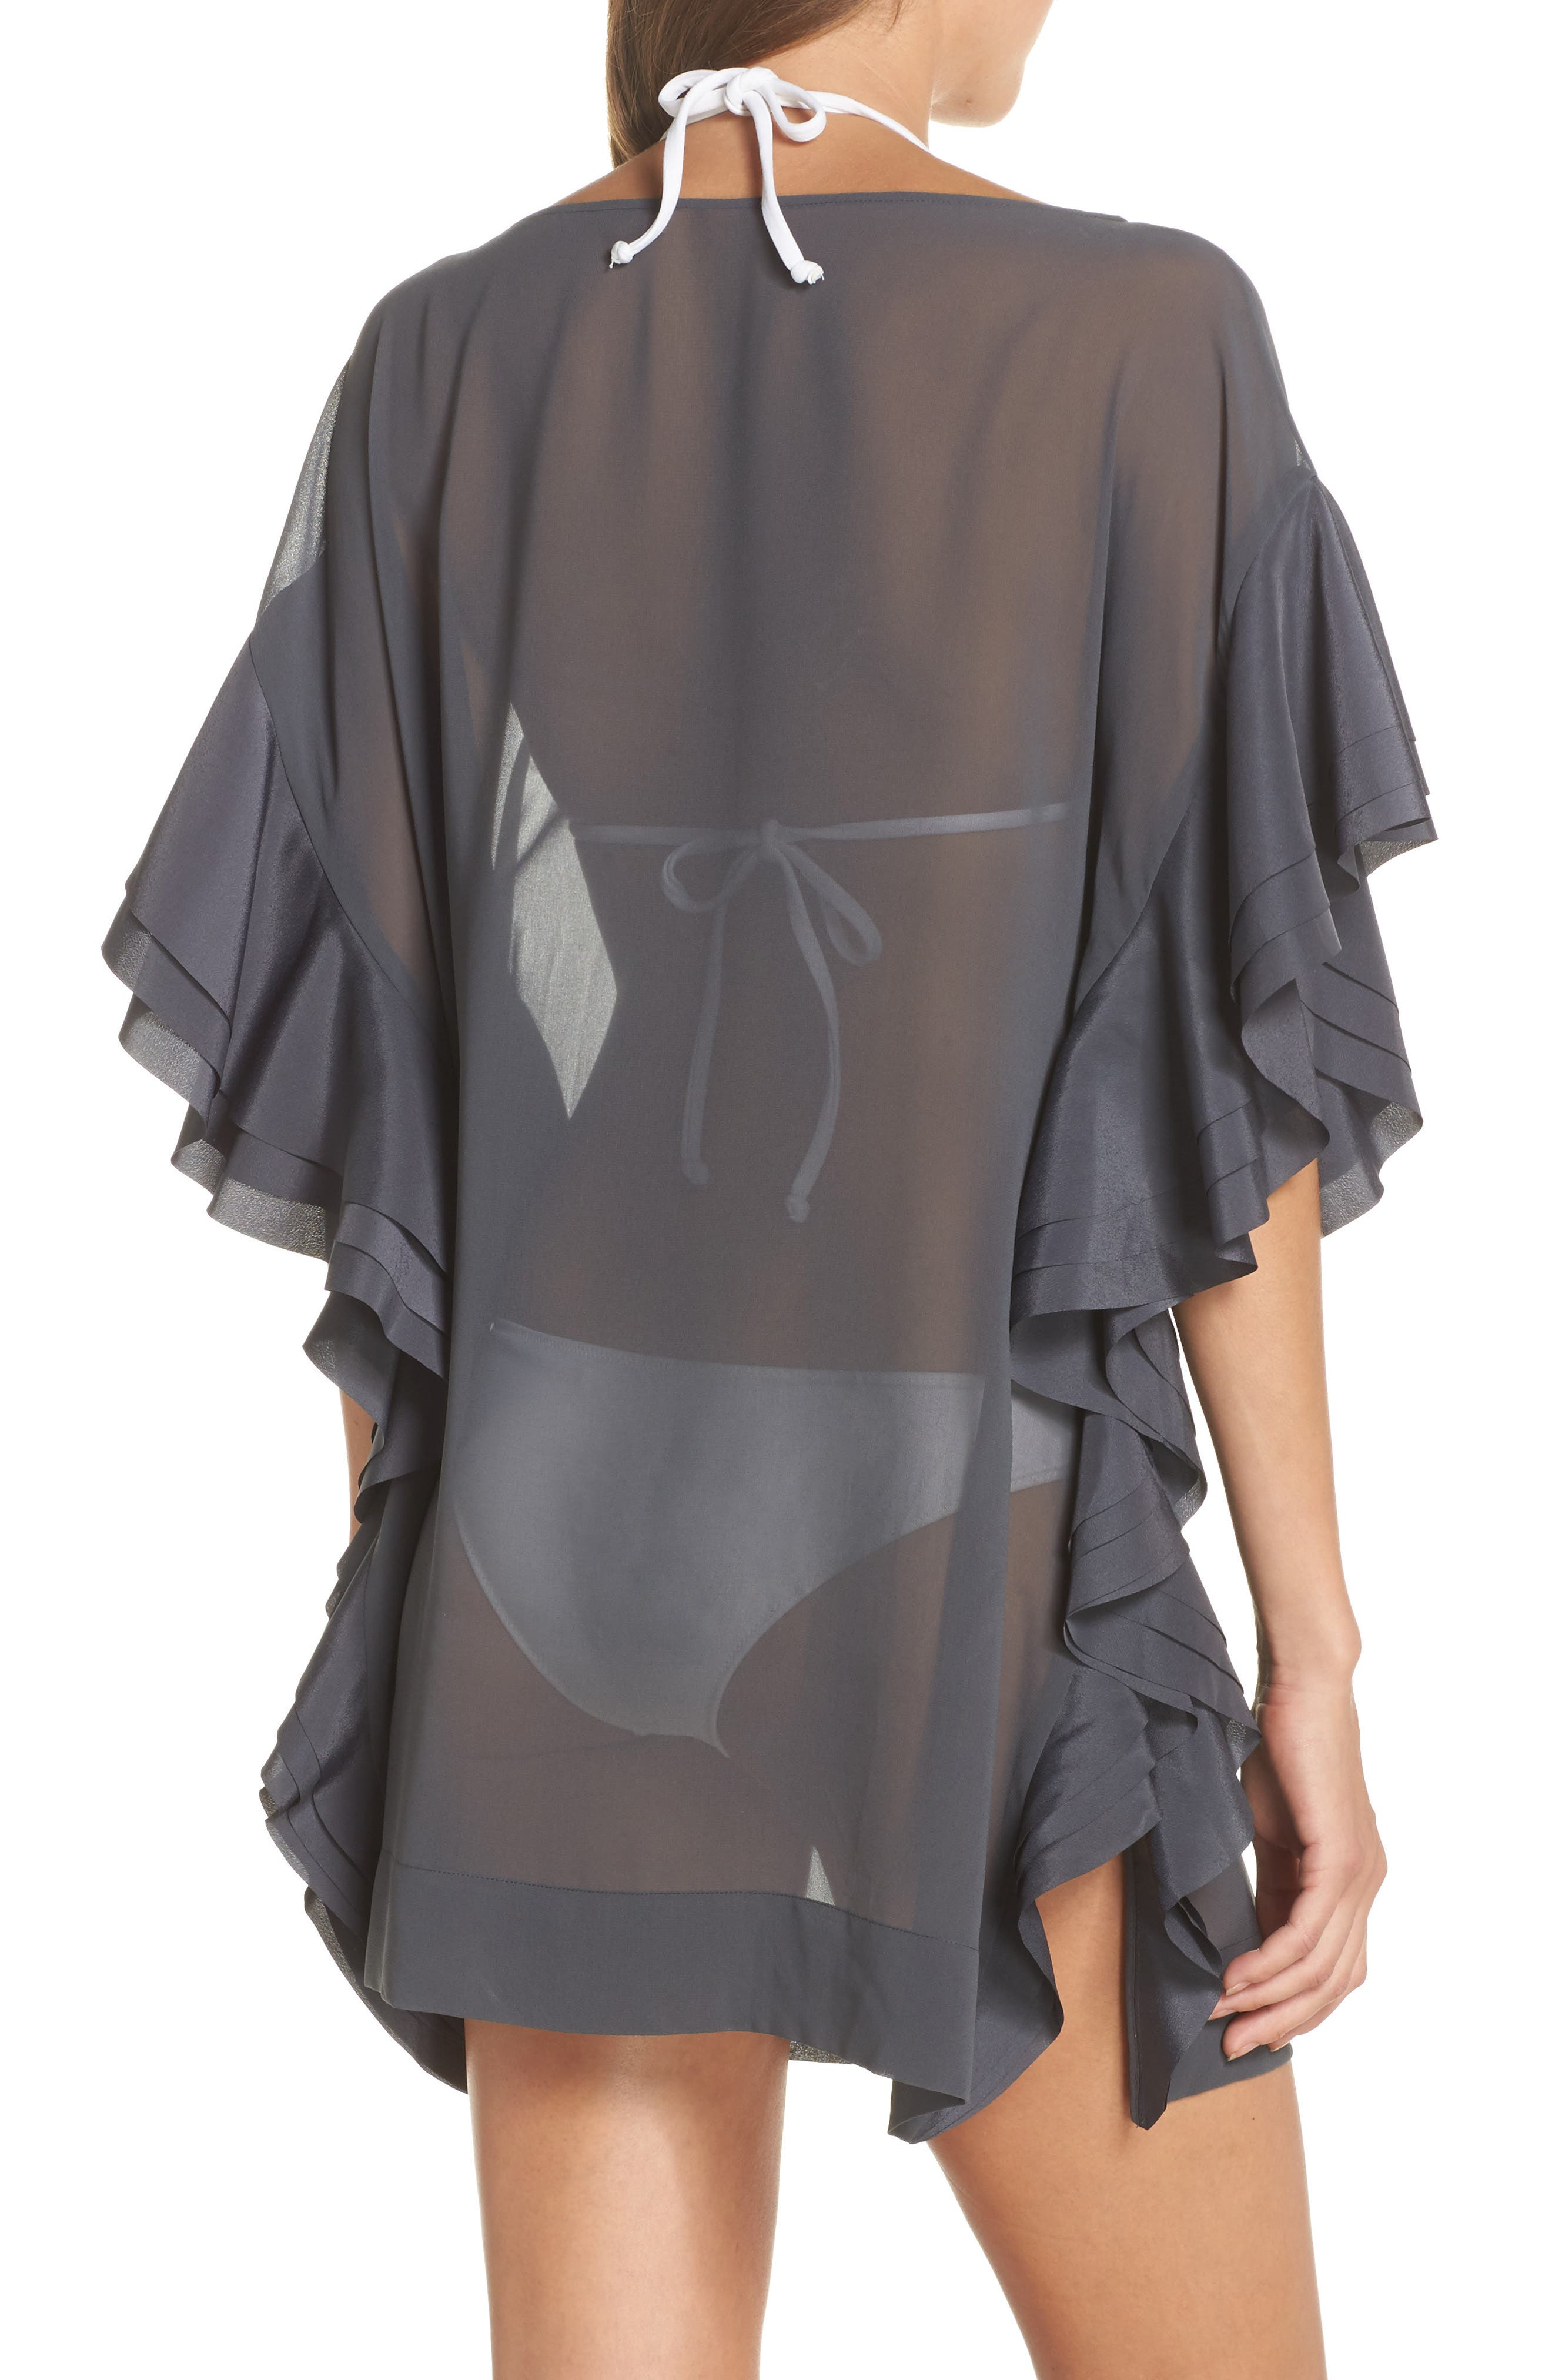 TED BAKER LONDON, Ruffle Square Cover-Up Dress, Alternate thumbnail 2, color, 030